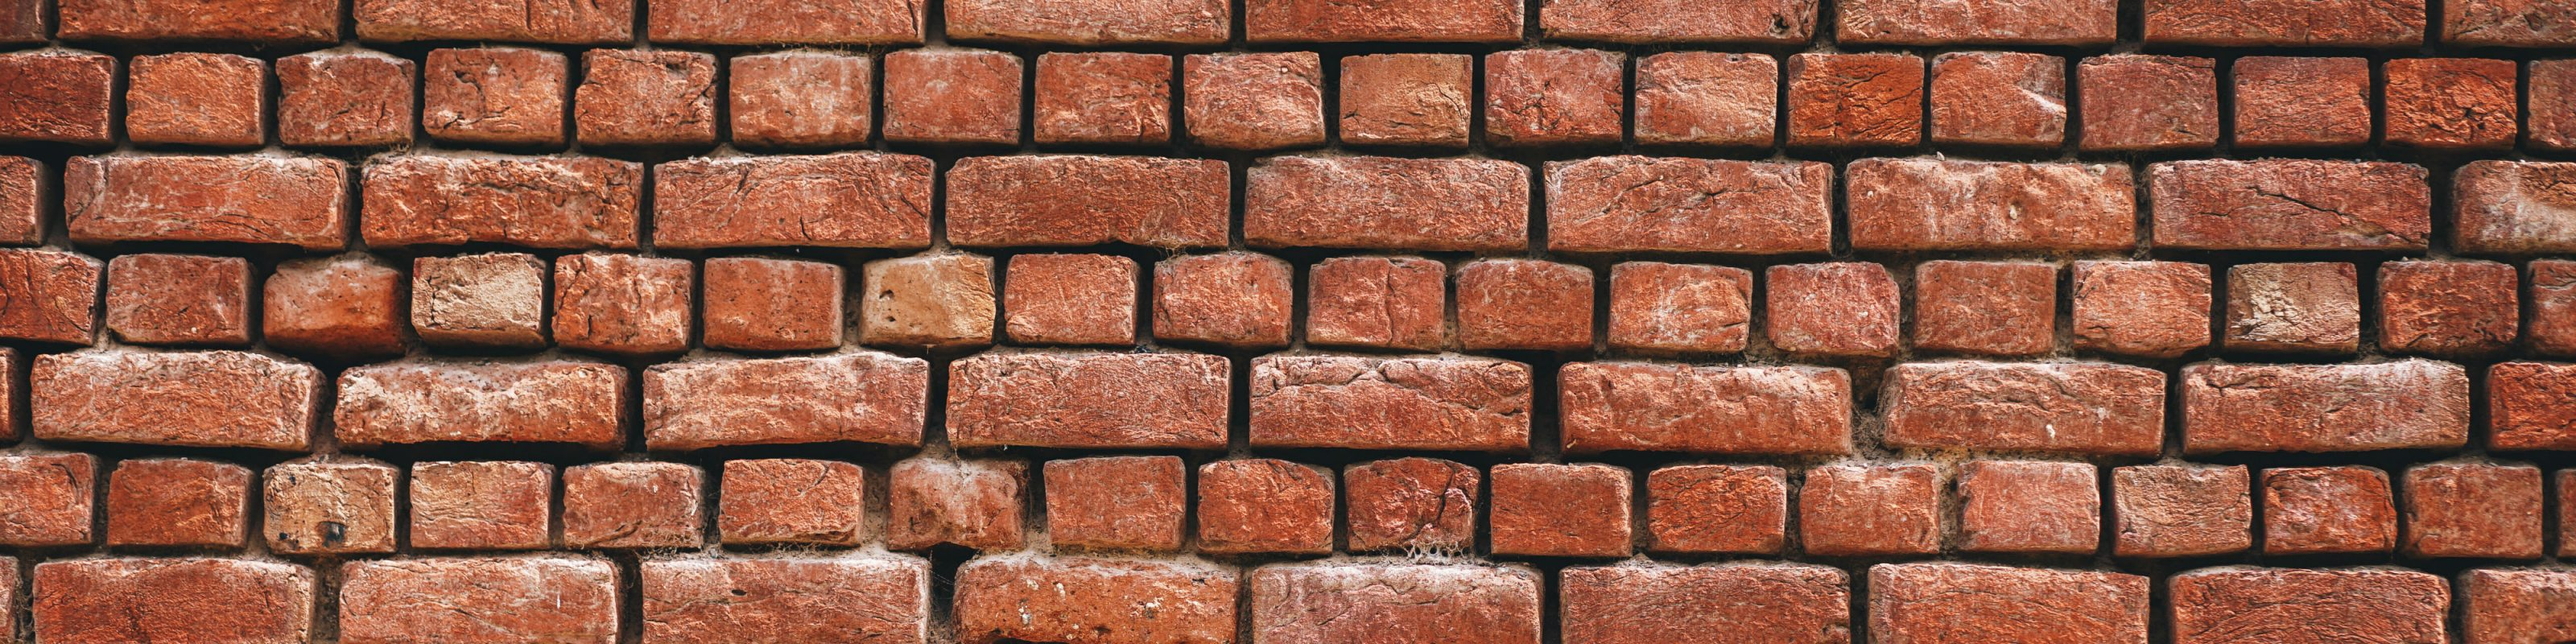 Standard home building bricks